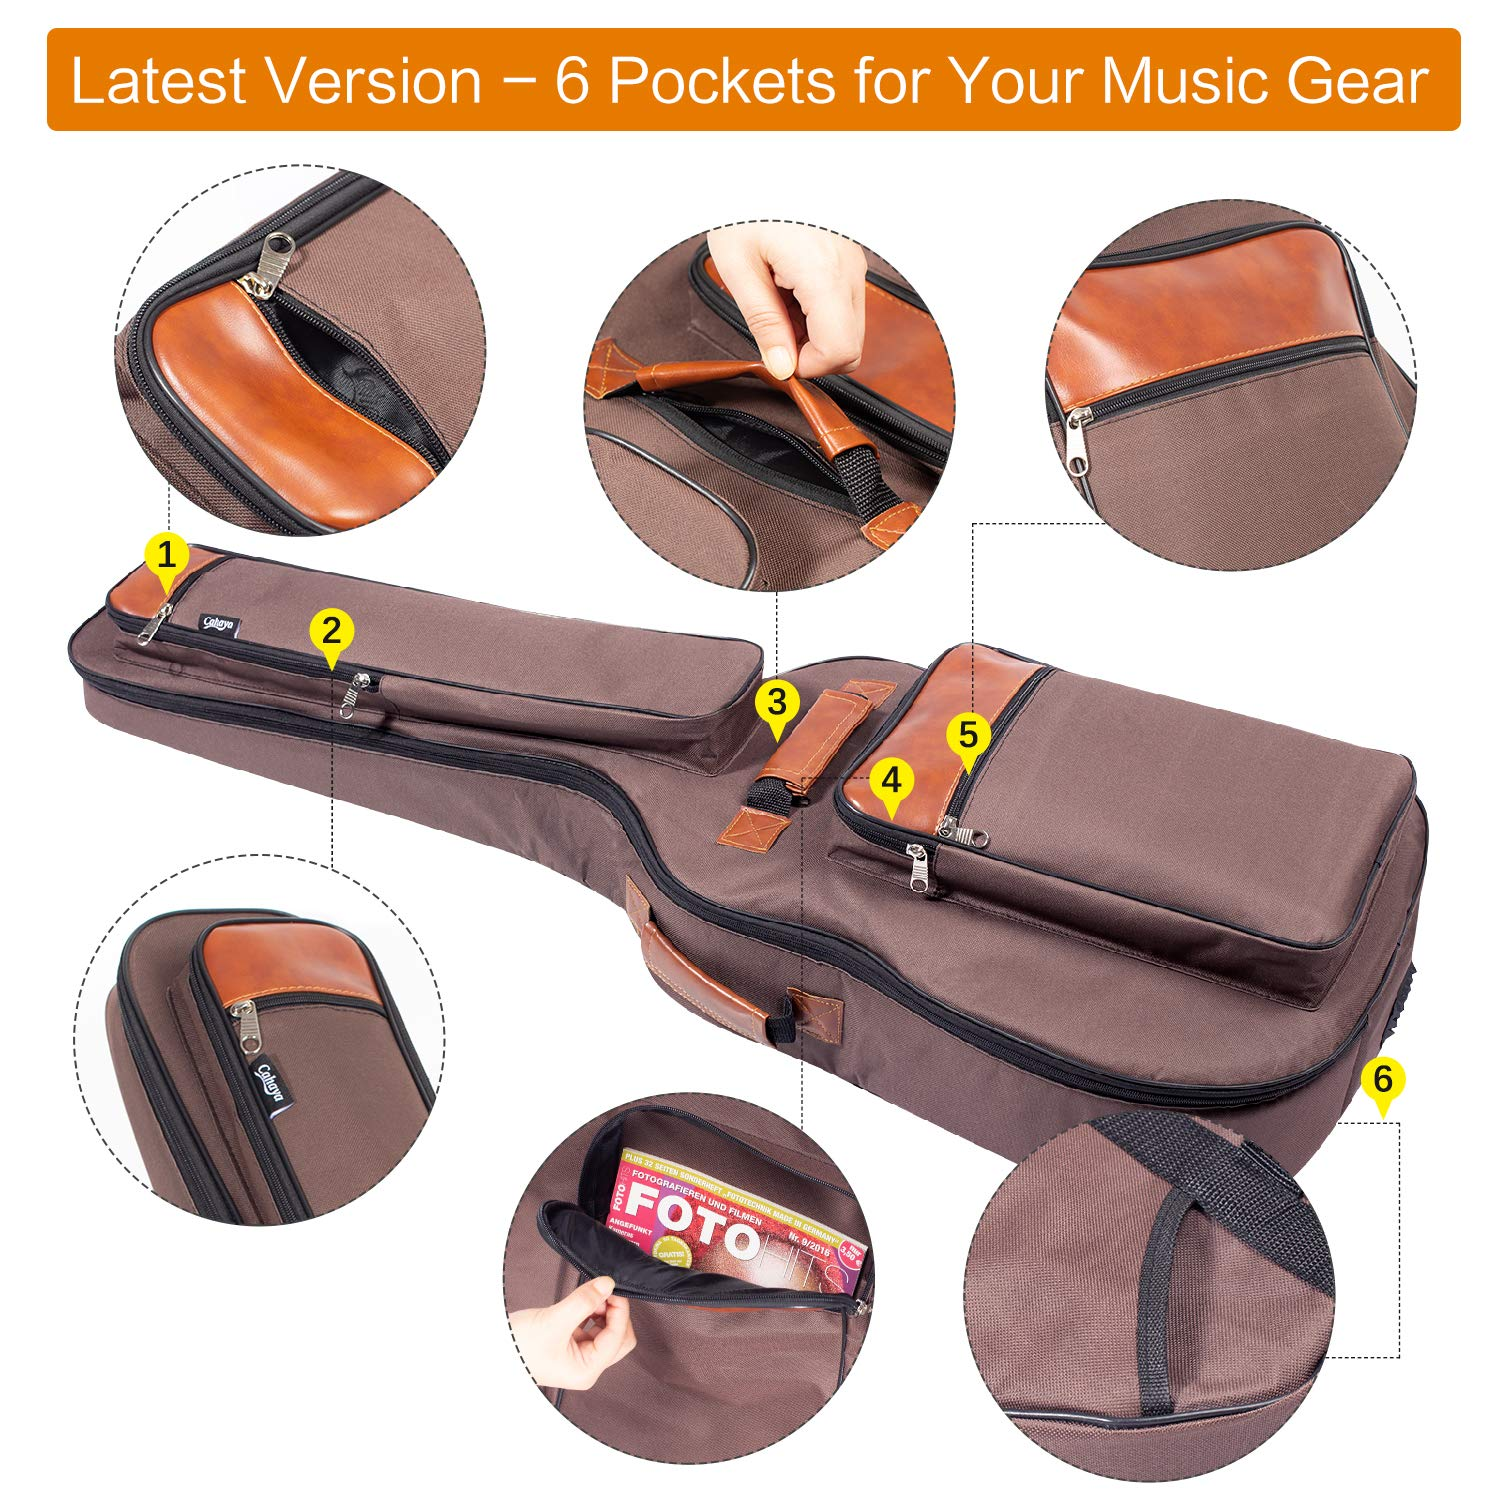 CAHAYA Guitar Bag 40 41 42 Inches 6 Pockets [Upgraded Premium Version] Guitar Case Waterproof Oxford Cloth 0.5 Inch Extra Thick Sponge Overly Padded with 5 Picks & Holder for Acoustic Classical Guitar by CAHAYA (Image #3)